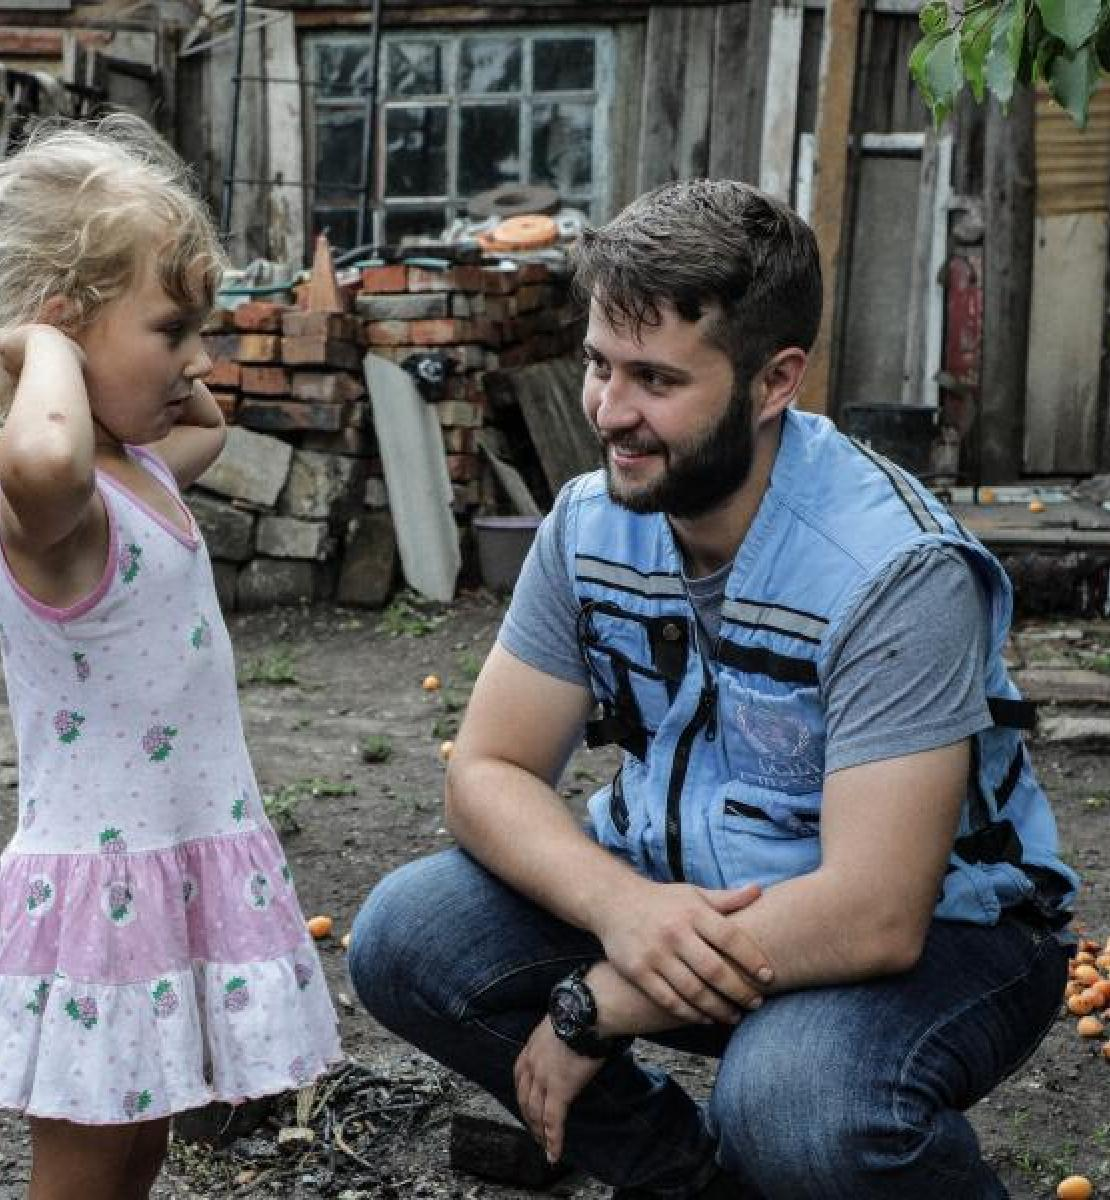 UN staff kneels as he smiles and speaks with a little girl in Ukraine.